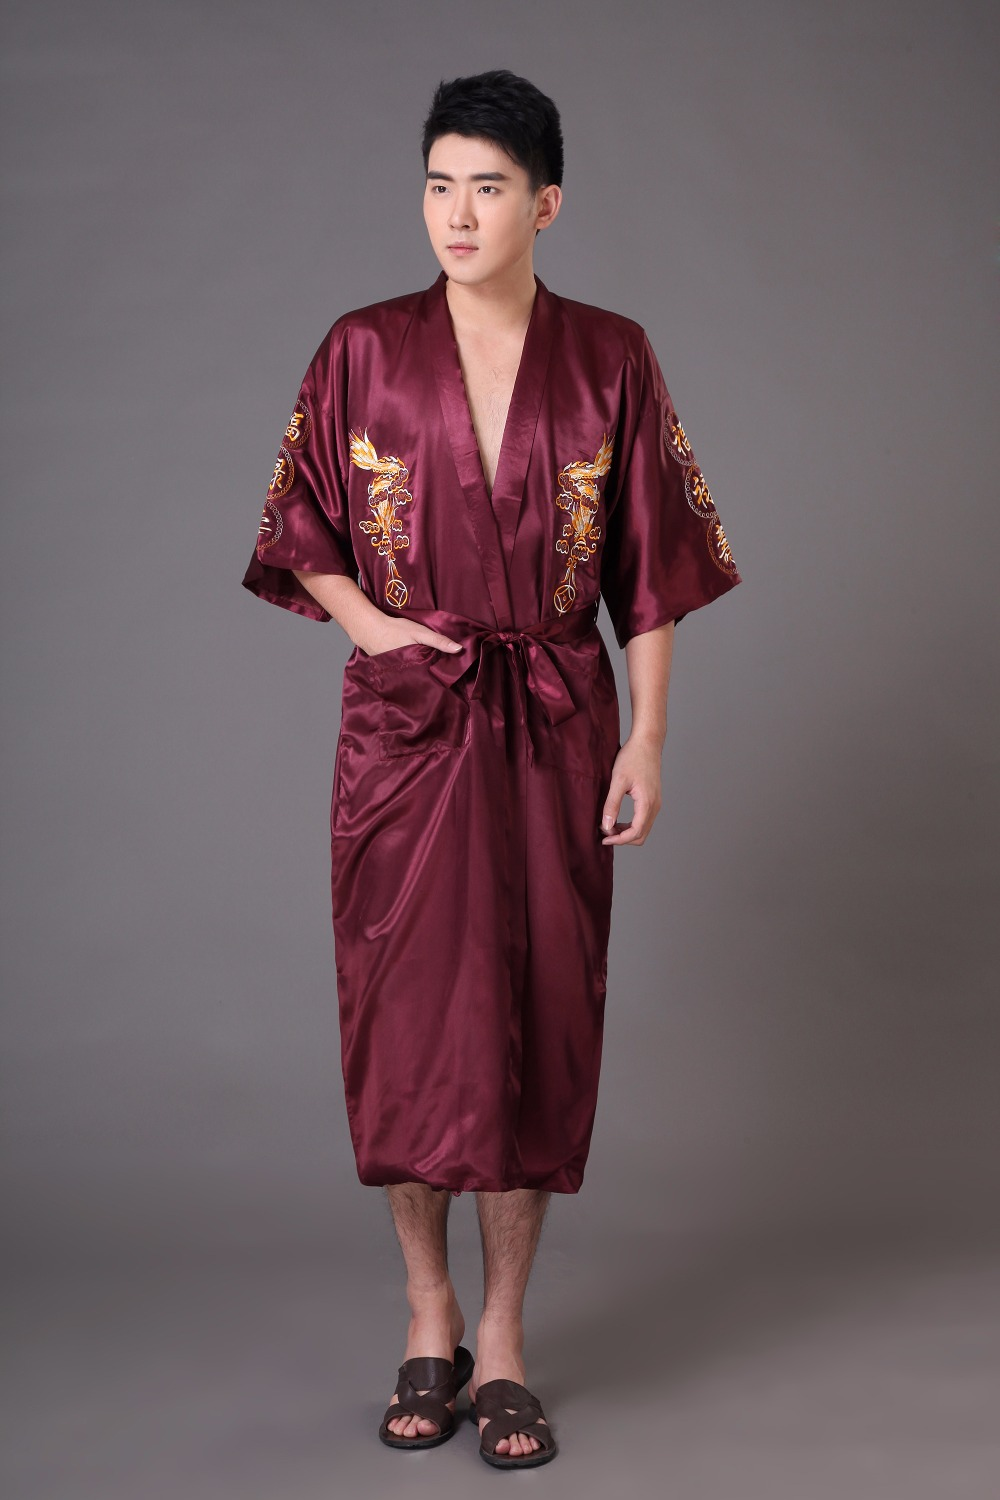 32886df541ce7 Plus Size S-XXXL Chinese Traditional Men s Satin Robe Bath Gown ...